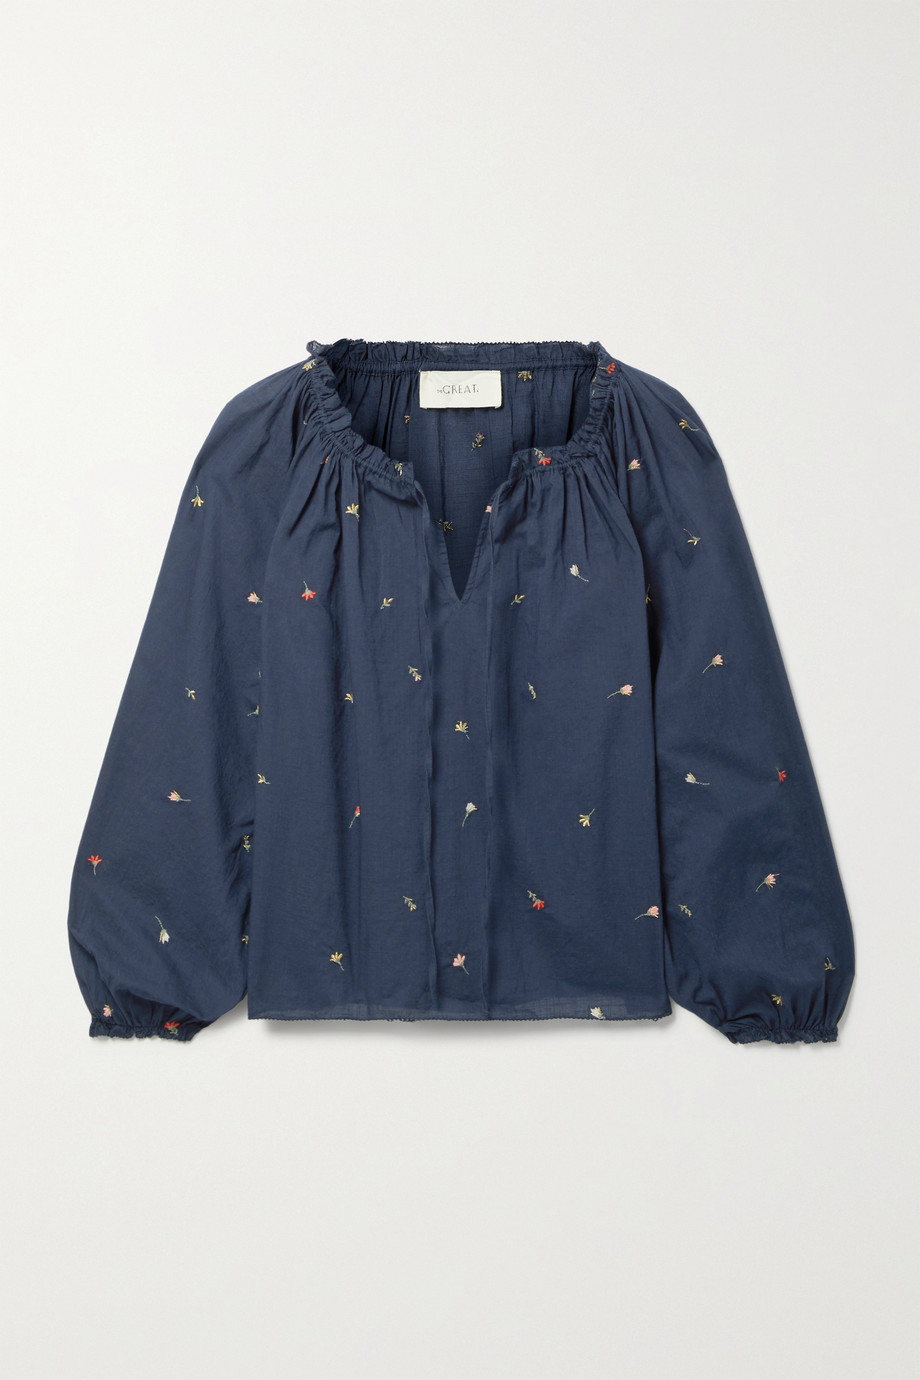 THE GREAT. The Posey gathered embroidered cotton-voile blouse